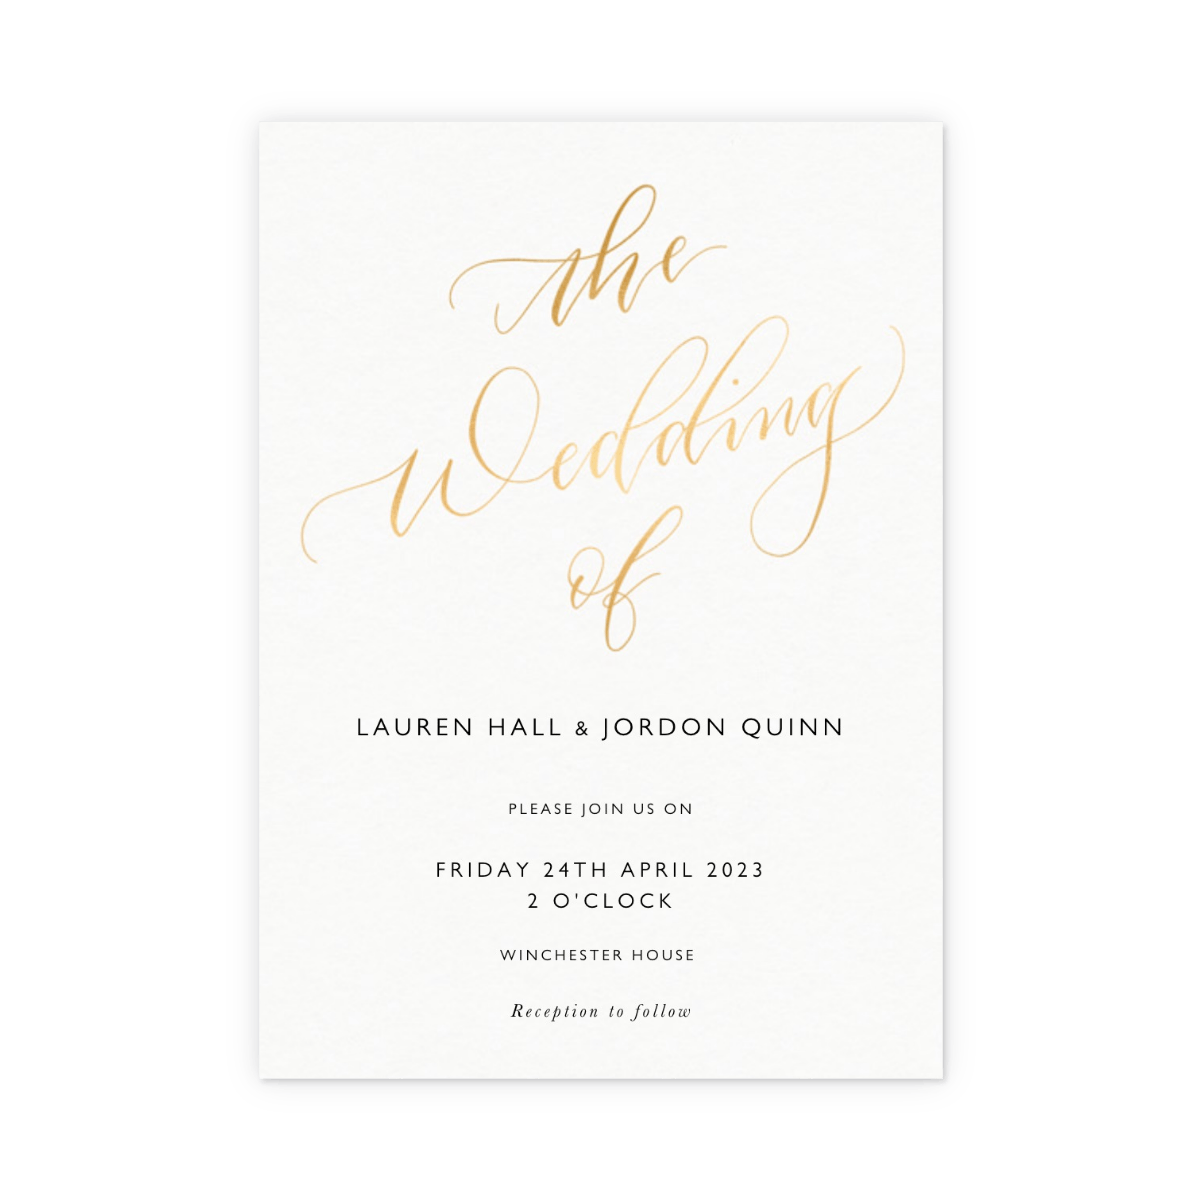 Https%3a%2f%2fwww.papier.com%2fproduct image%2f68588%2f4%2fthe wedding of calligraphy 16264 front 1552573811.png?ixlib=rb 1.1